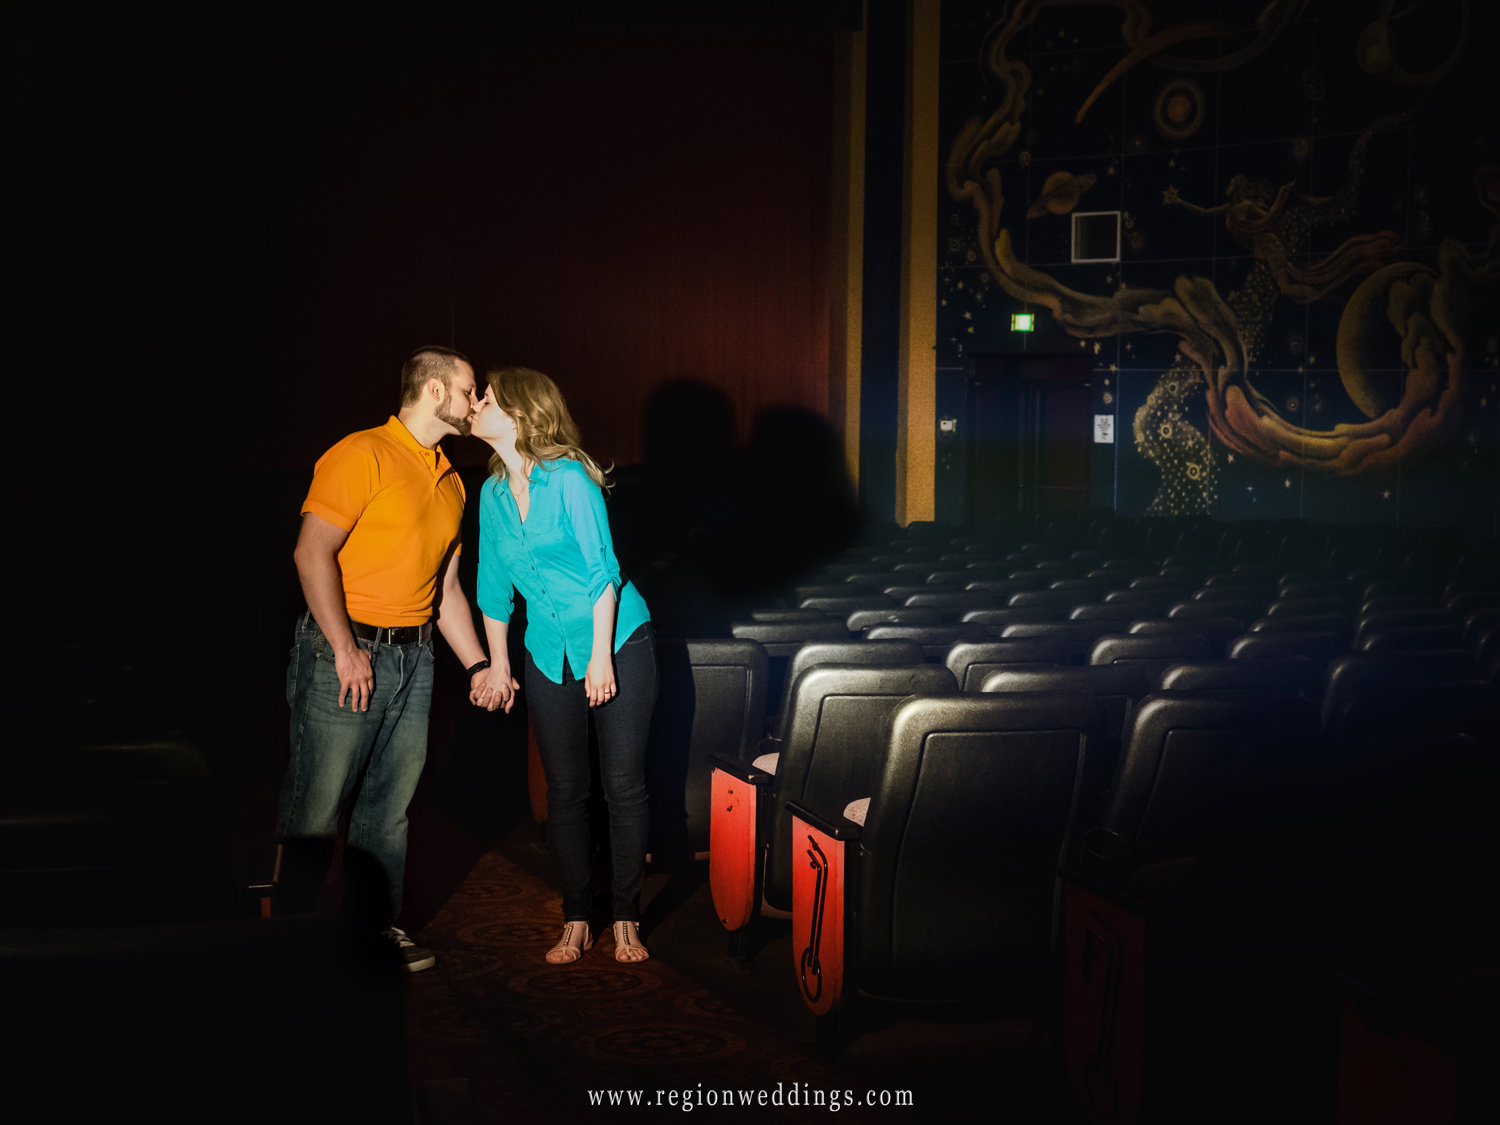 A young couple kisses on the way out of the movie theater.